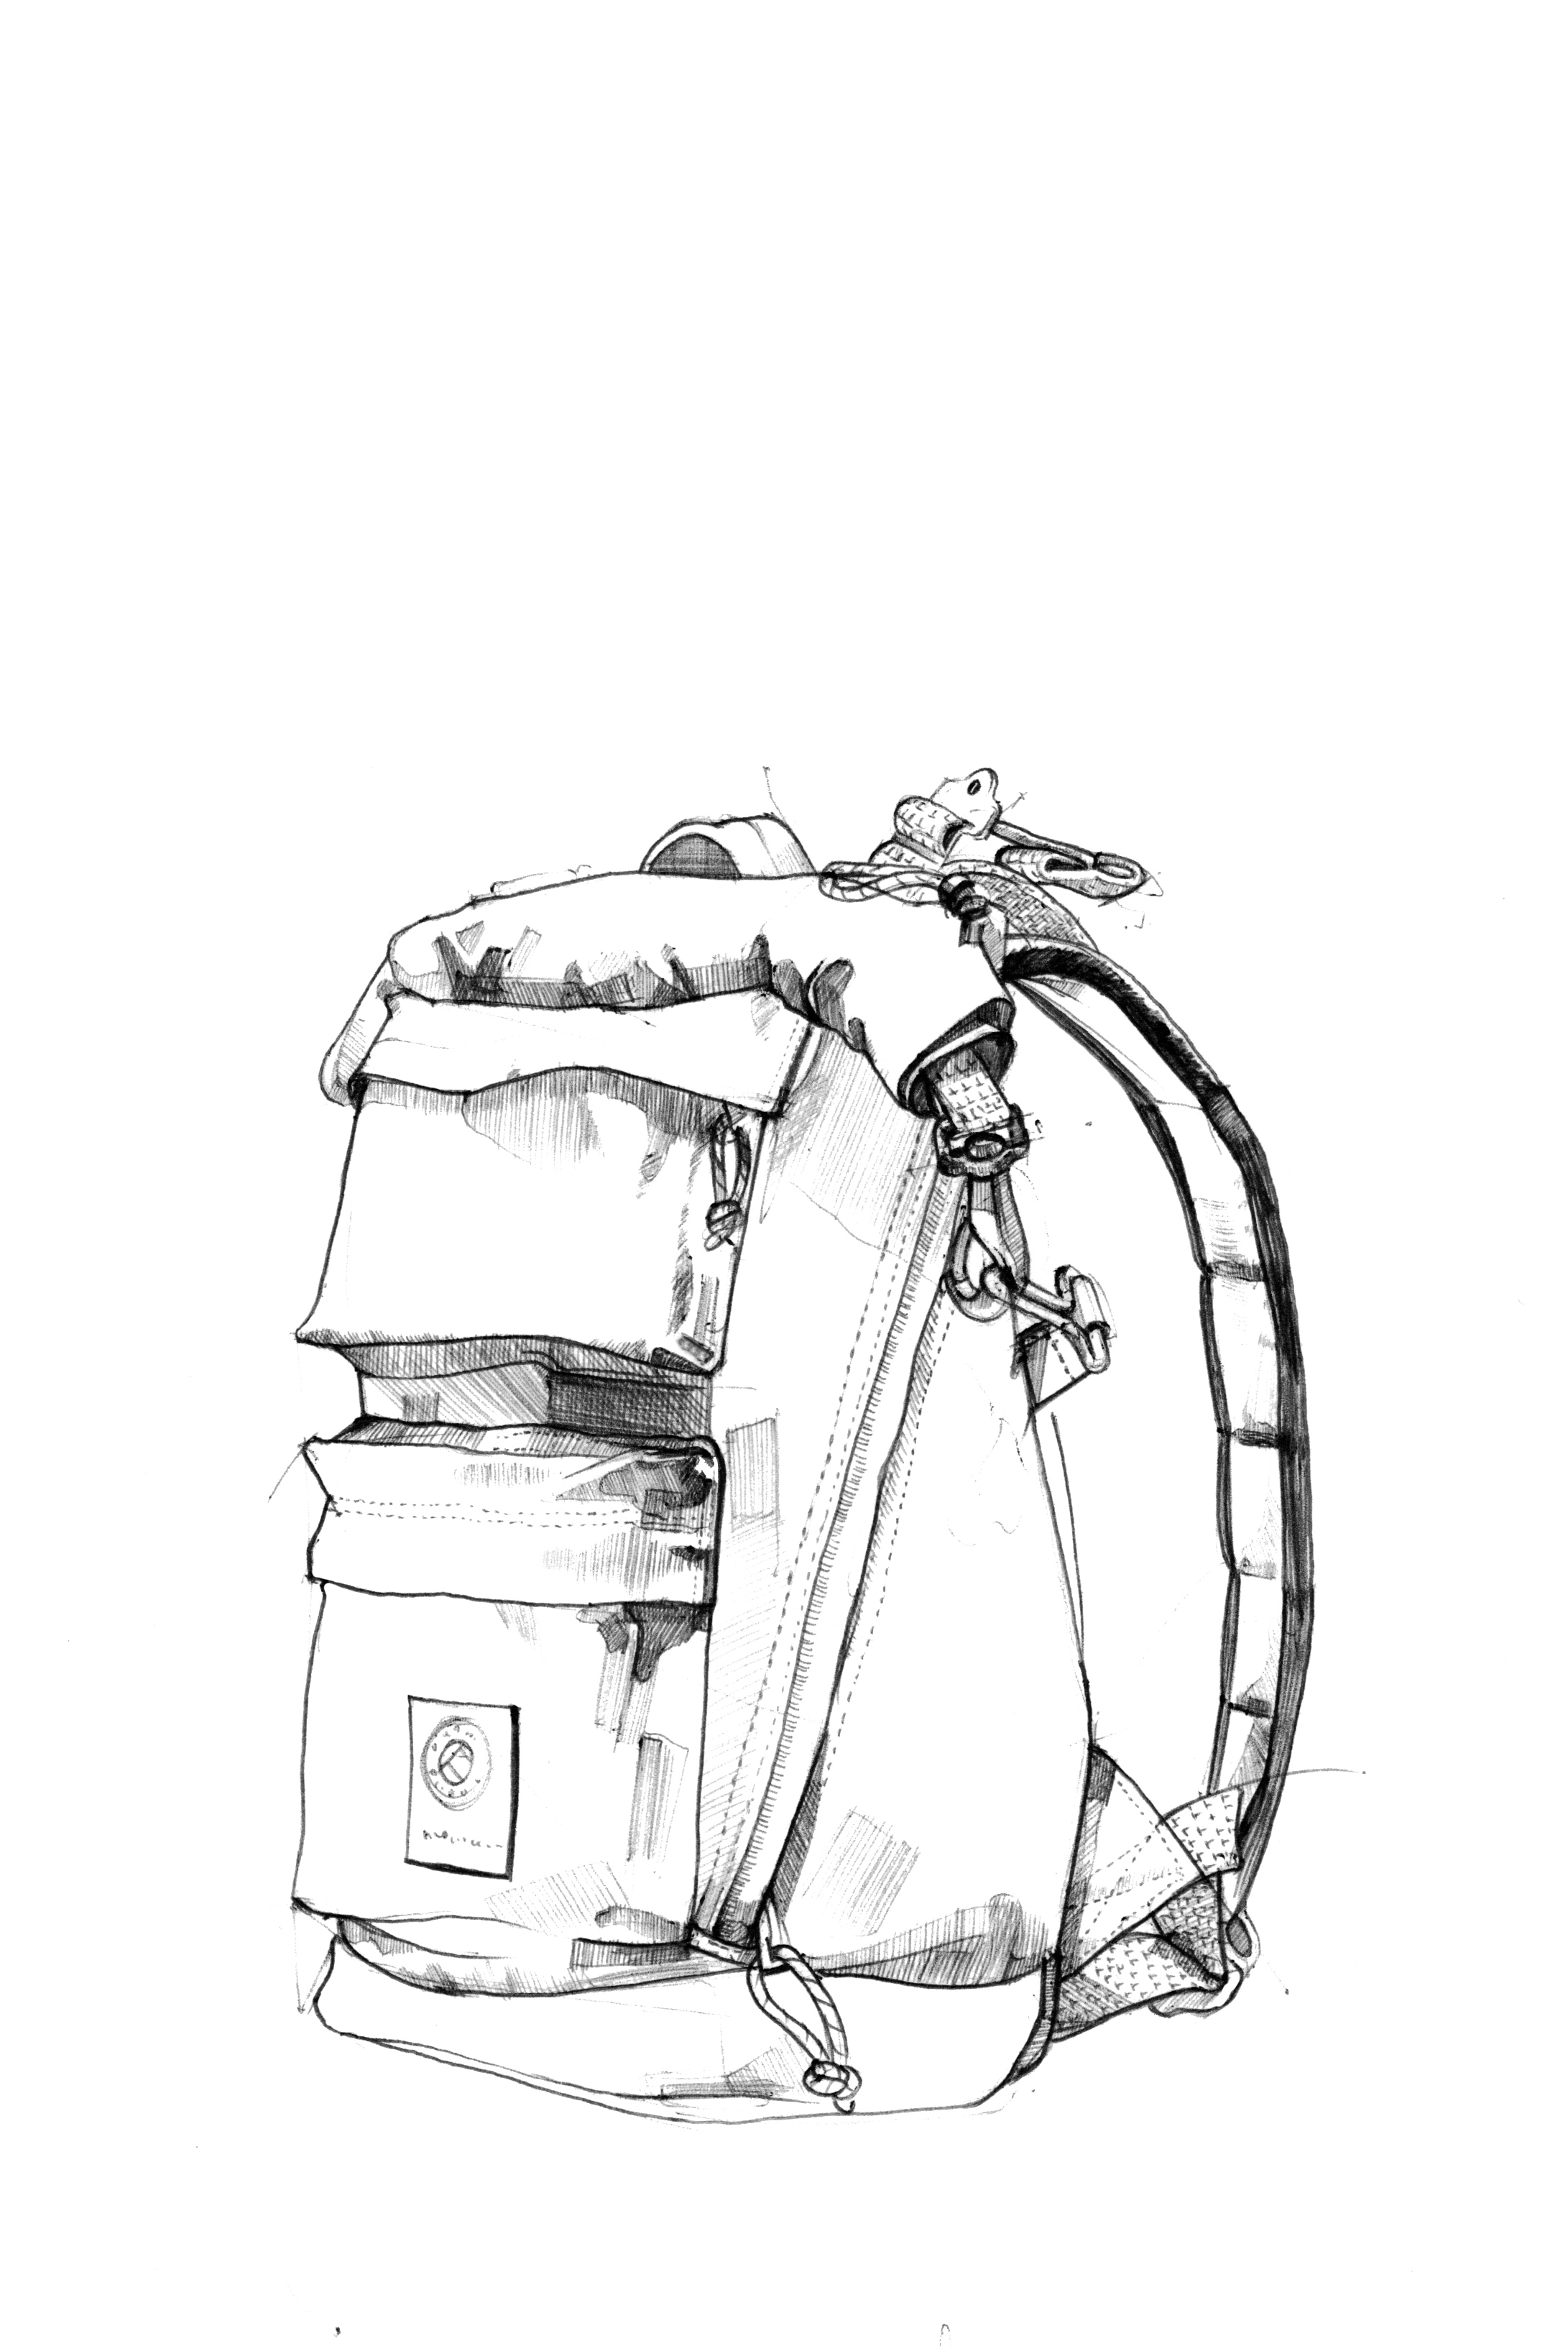 Kit Ruck Sack Side View 2018.jpeg